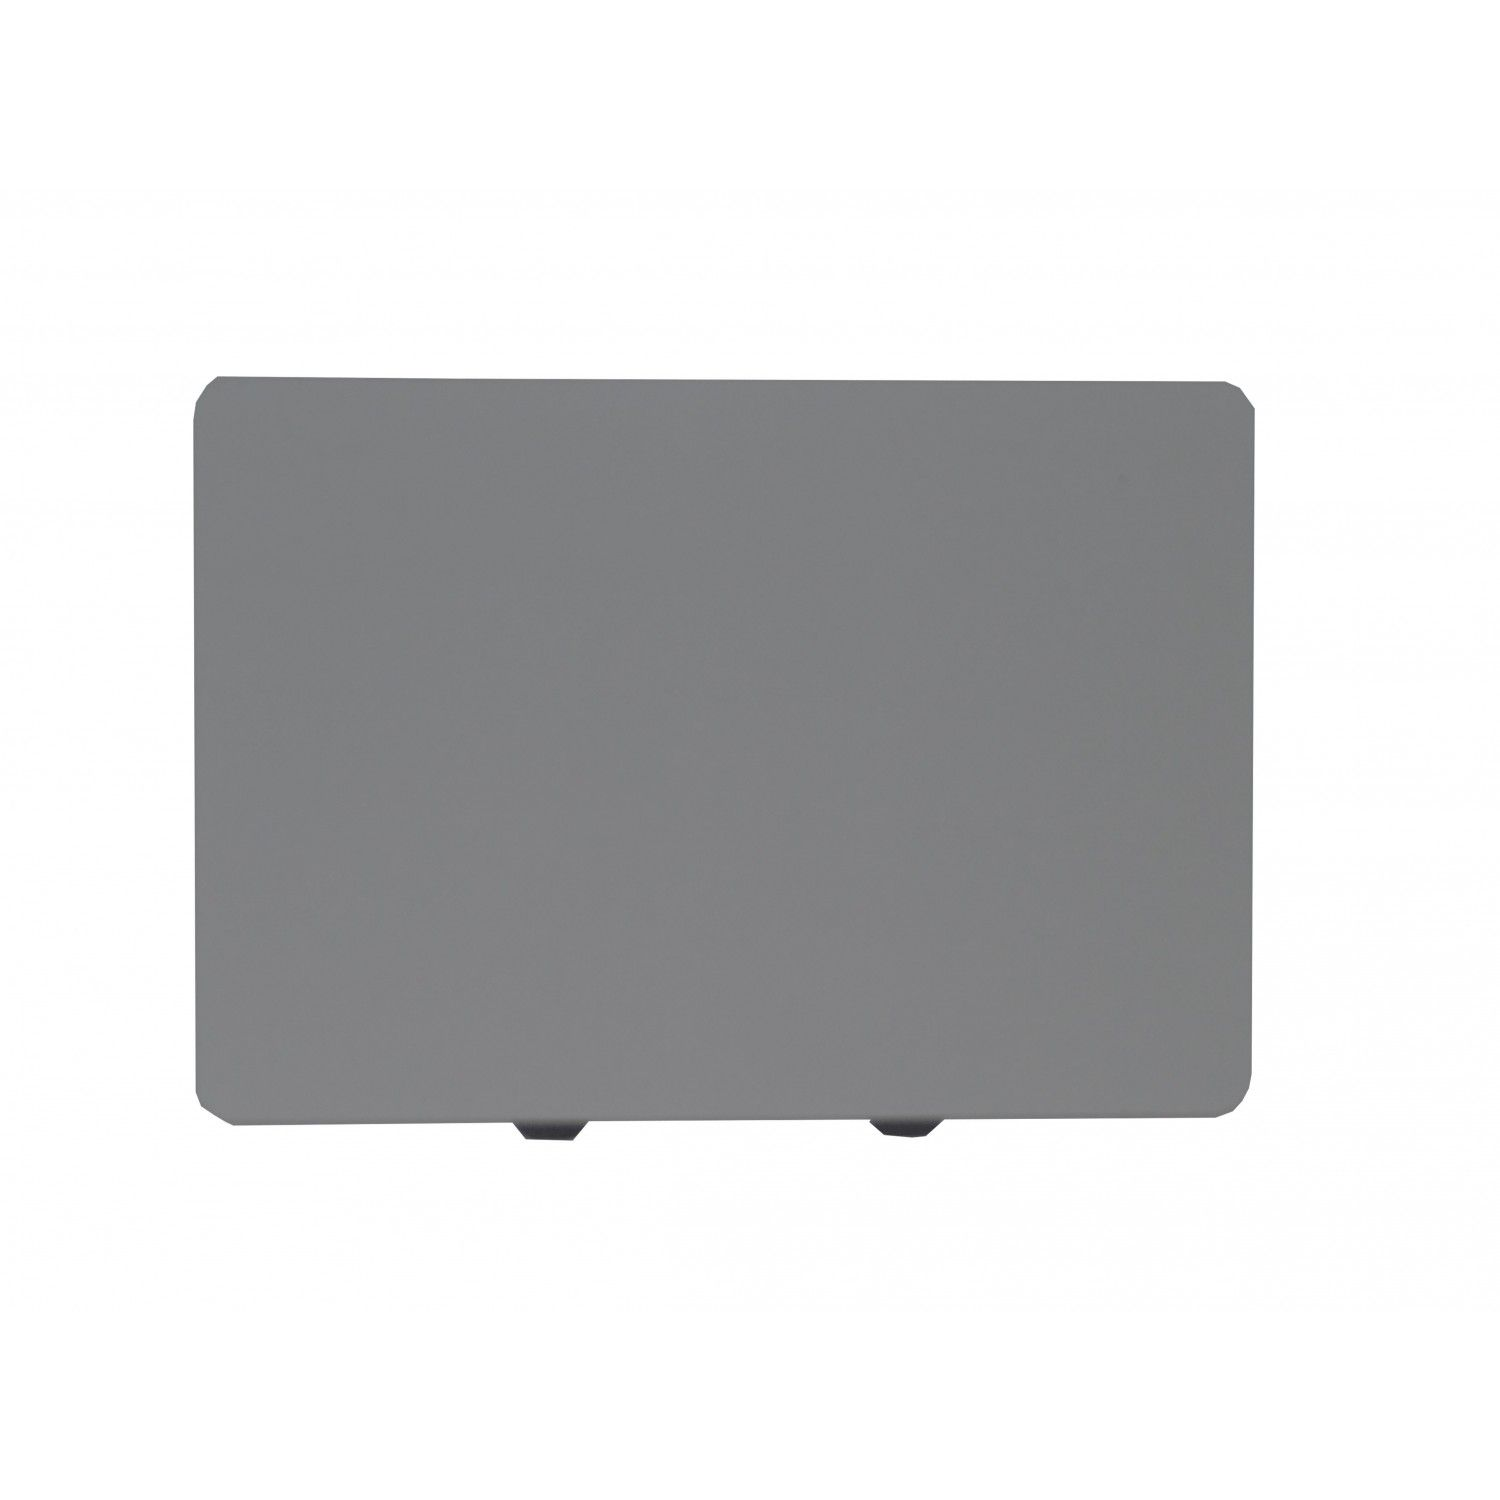 TOUCHPAD PARA MACBOOK PRO A1286 A1278 (AÑO 2009-2012) MB470LL/A